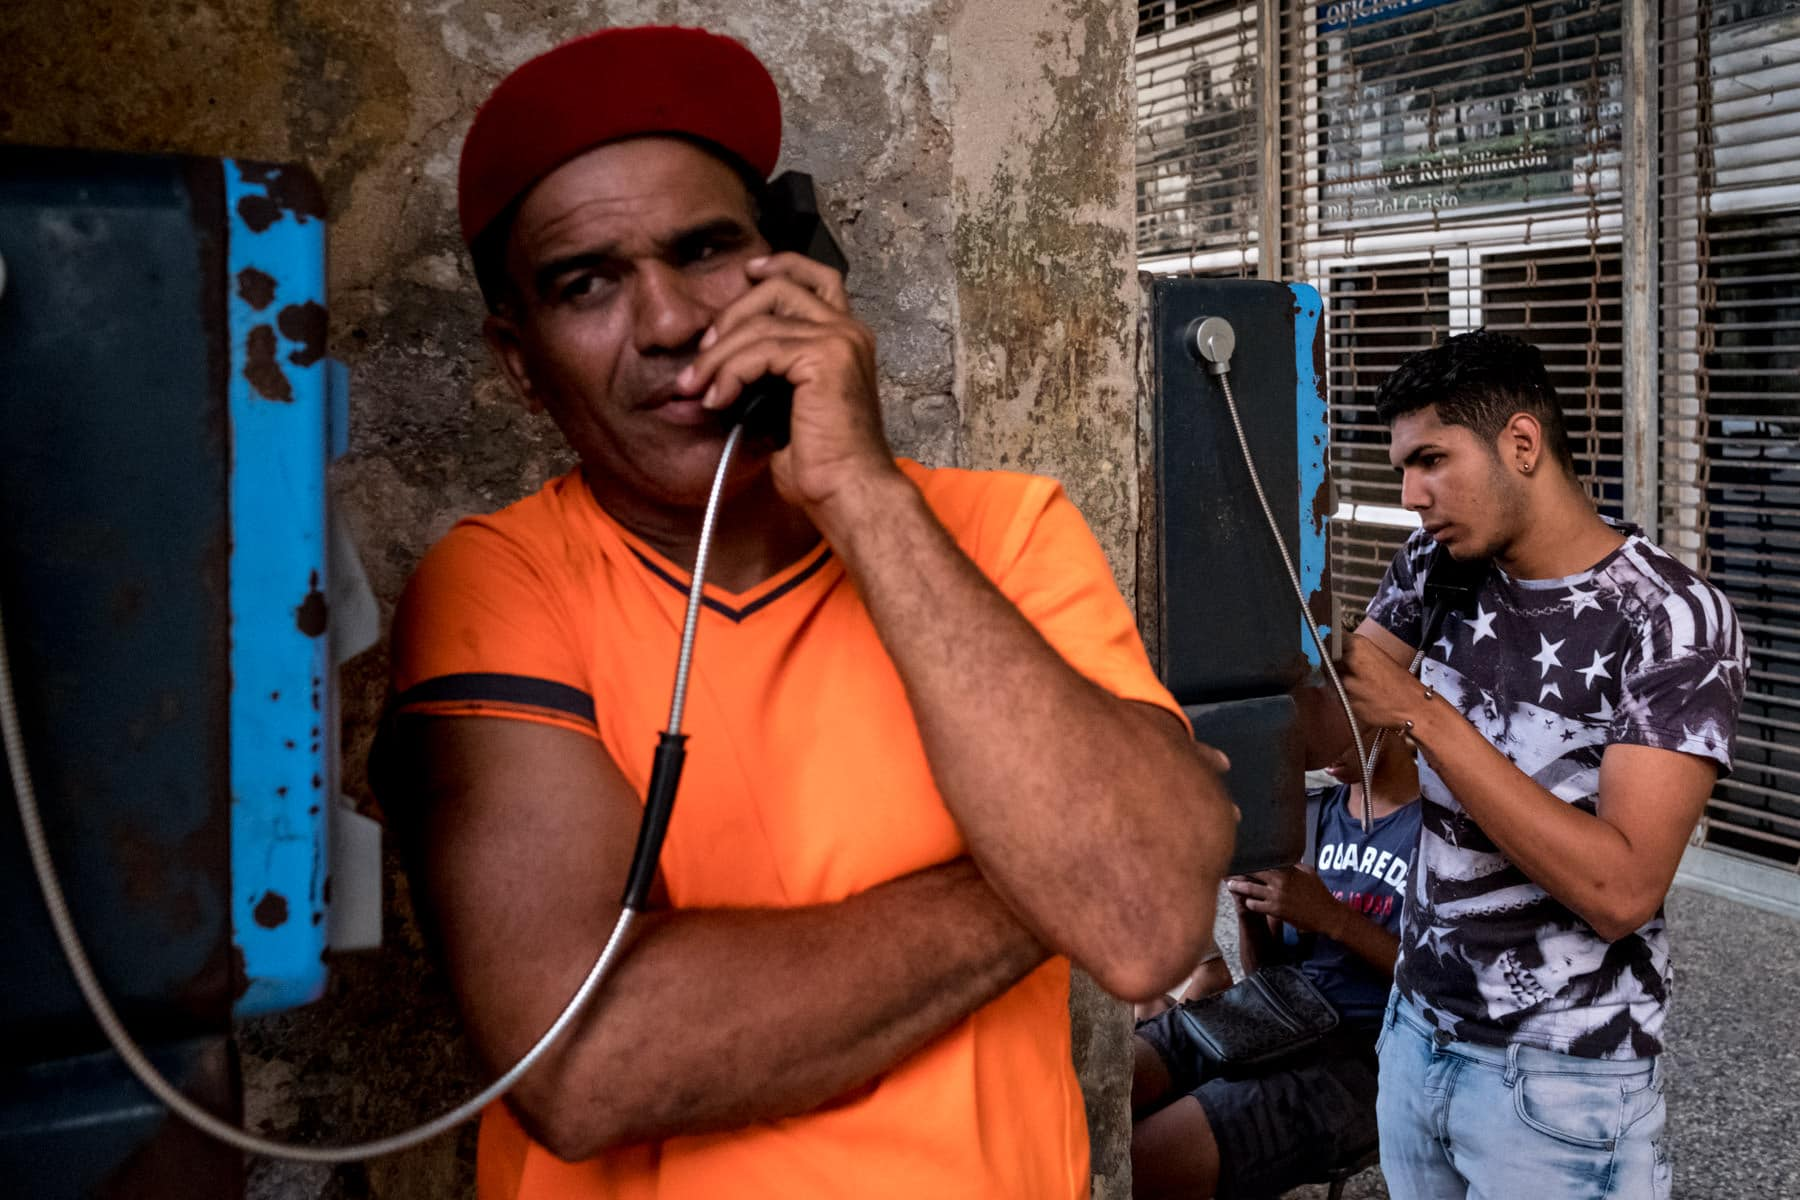 Havana Street Photography: A Taste Of Cuba with the Fuji X-T2